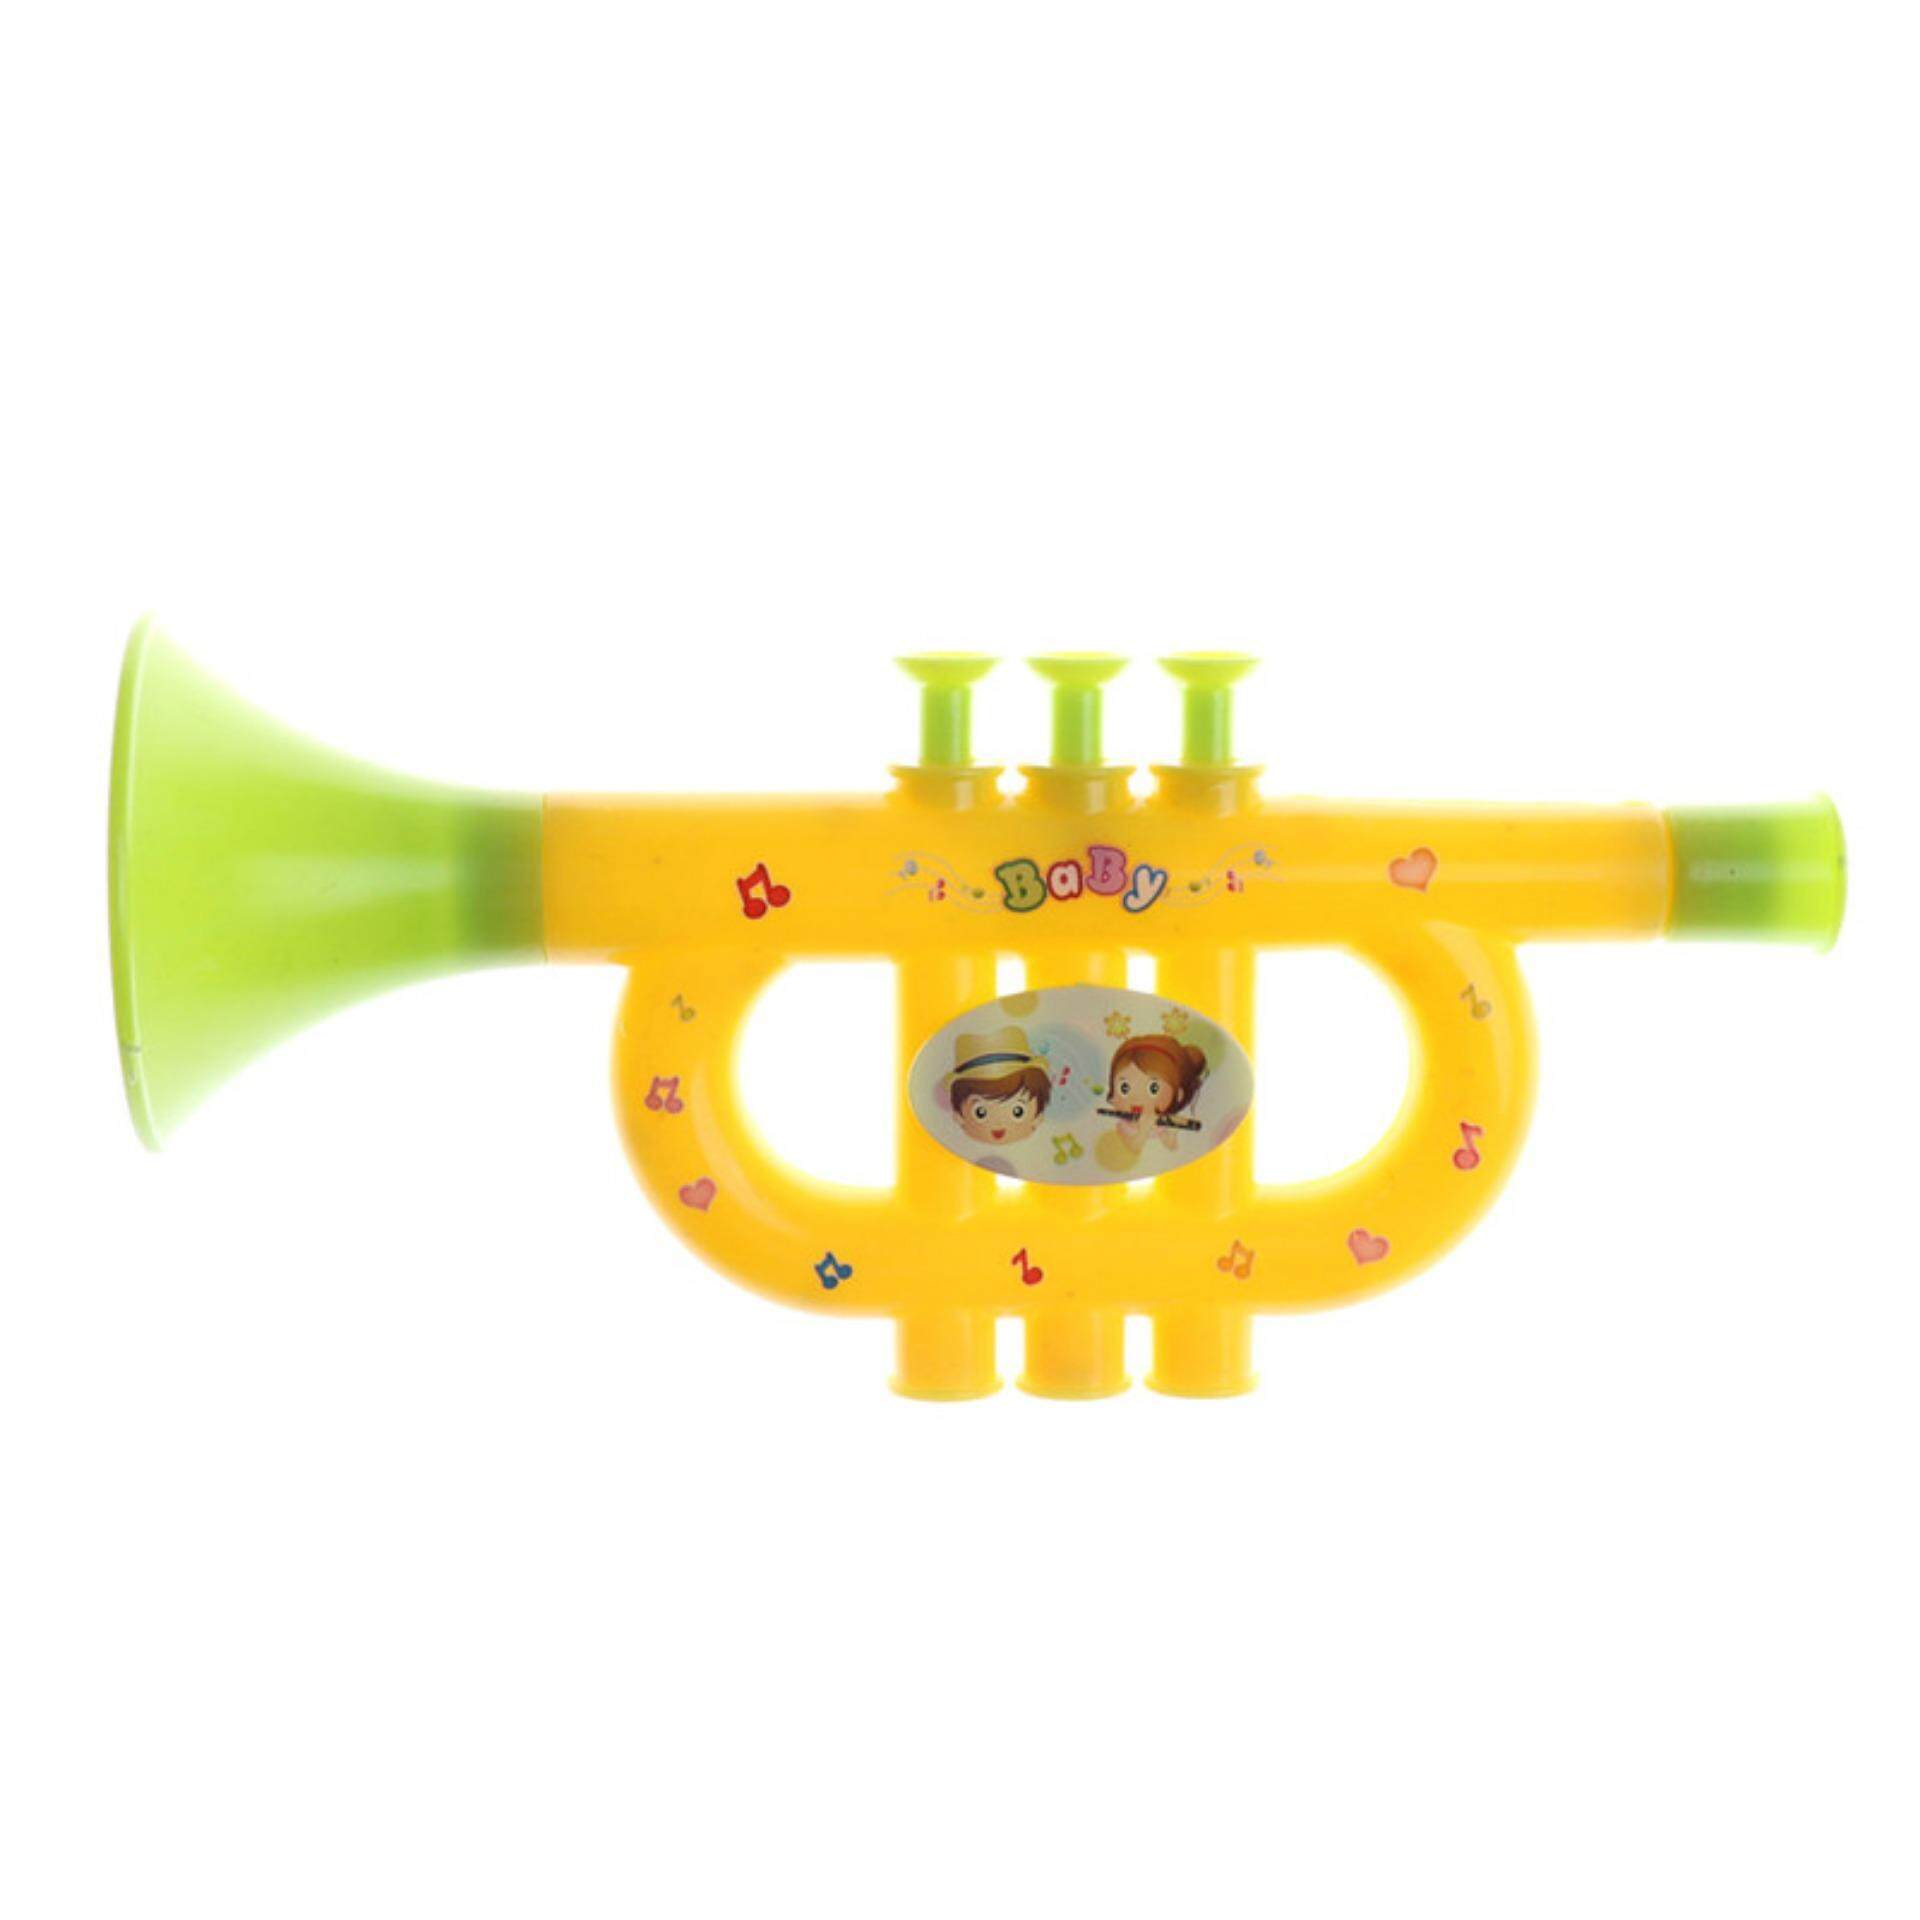 Plastic Trumpet Musical Instruments For Children Baby Kids Musical Toys